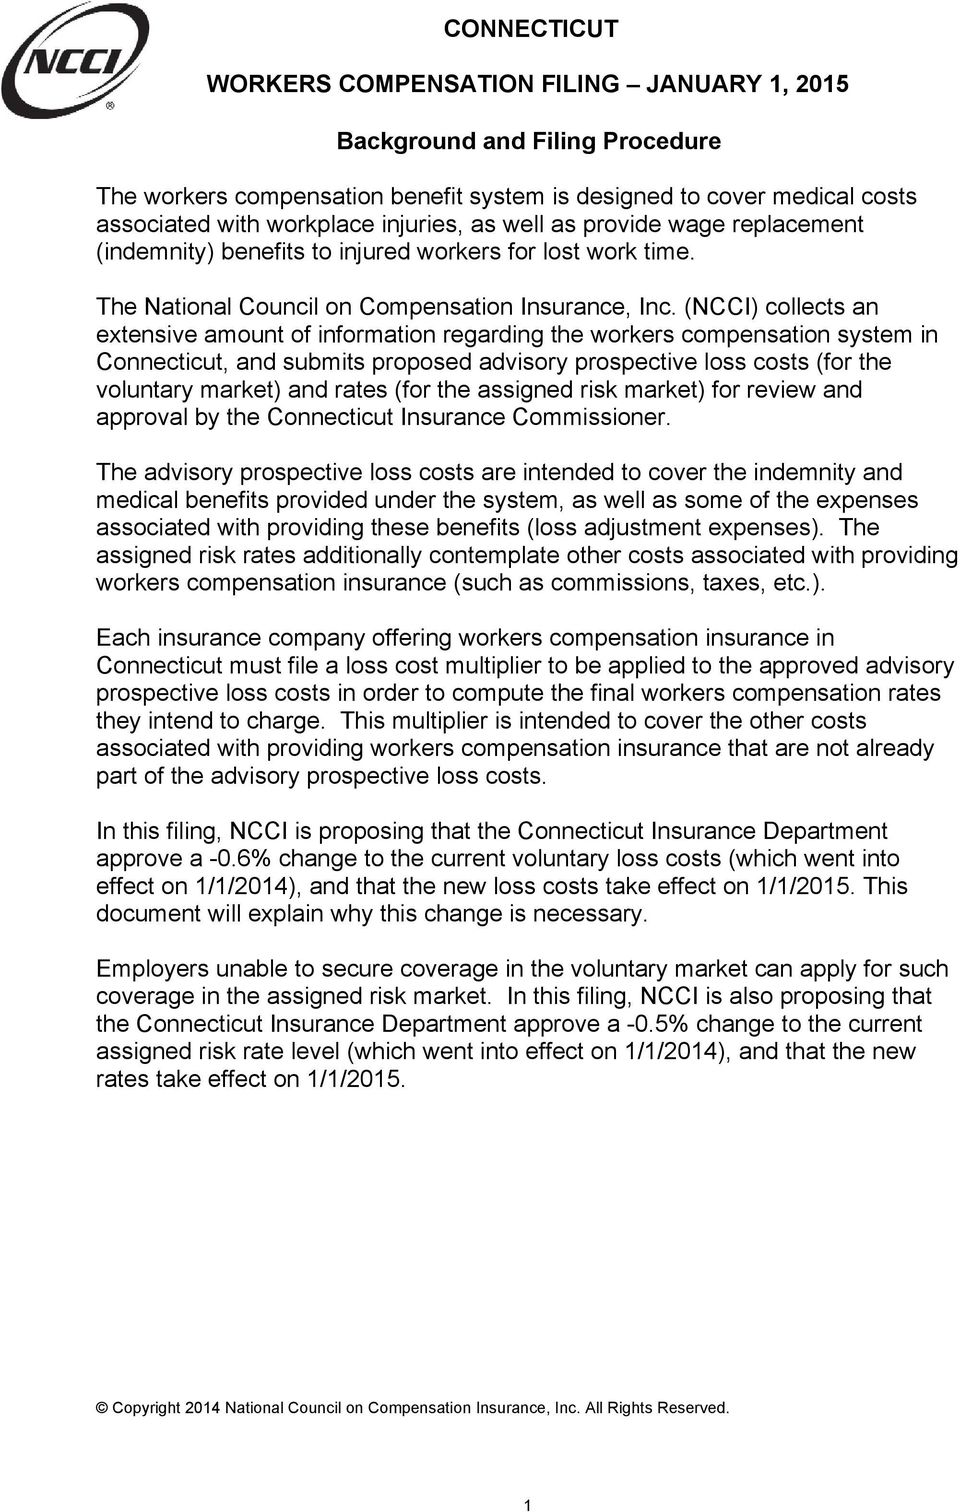 (NCCI) collects an extensive amount of information regarding the workers compensation system in Connecticut, and submits proposed advisory prospective loss costs (for the voluntary market) and rates